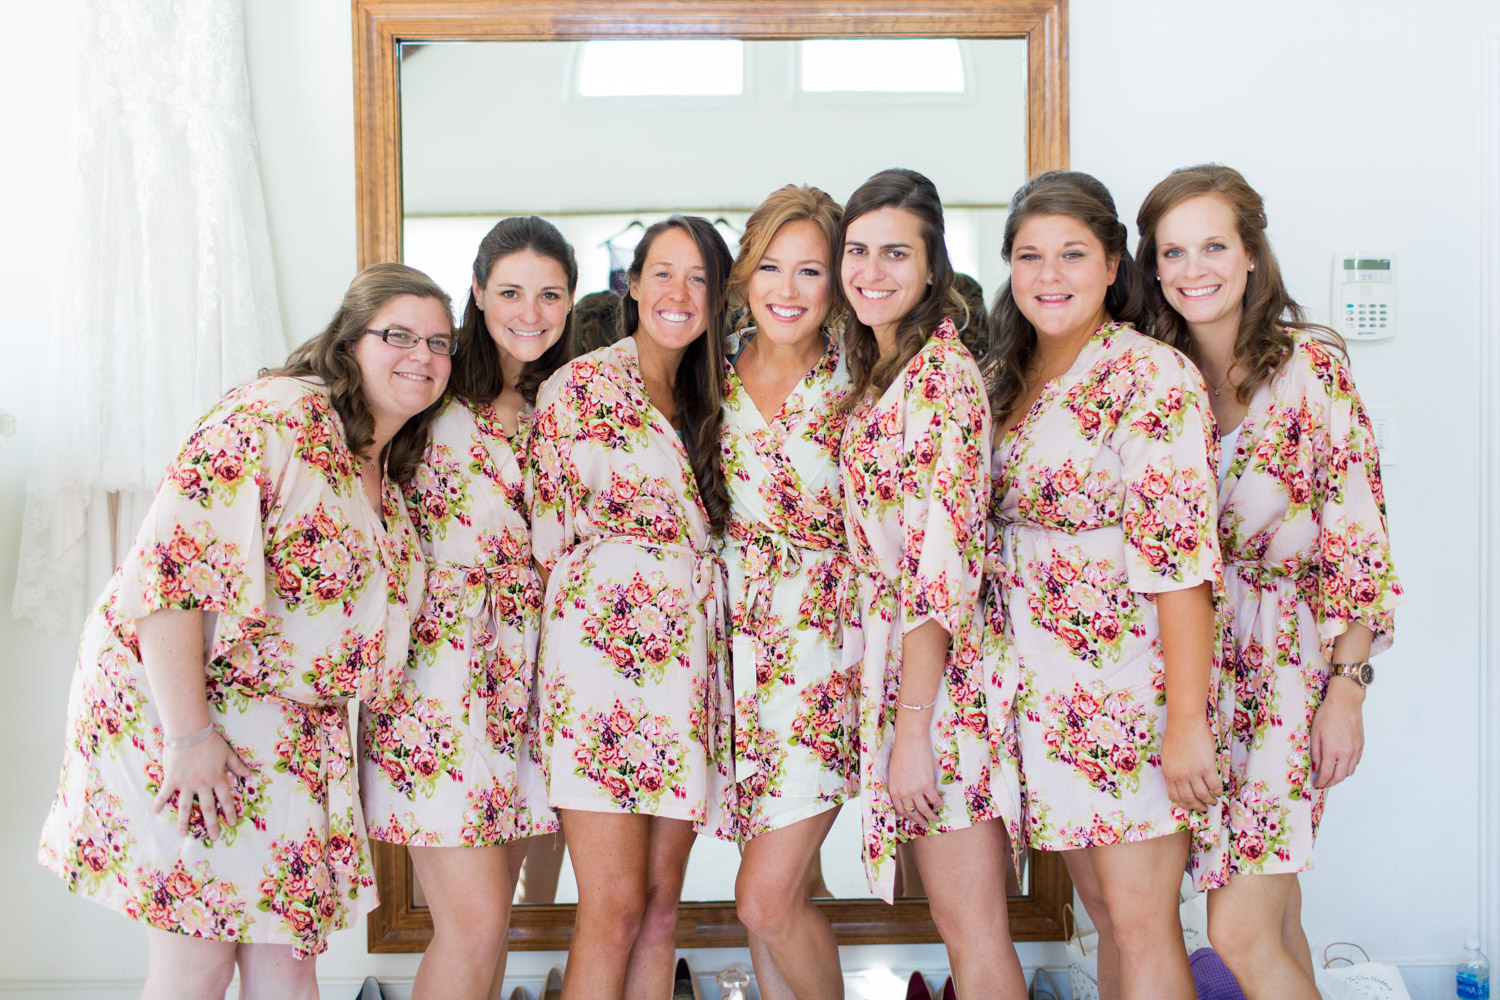 Bridesmaids getting ready for her wedding wearing a cute robe, Cavin Elizabeth Photography